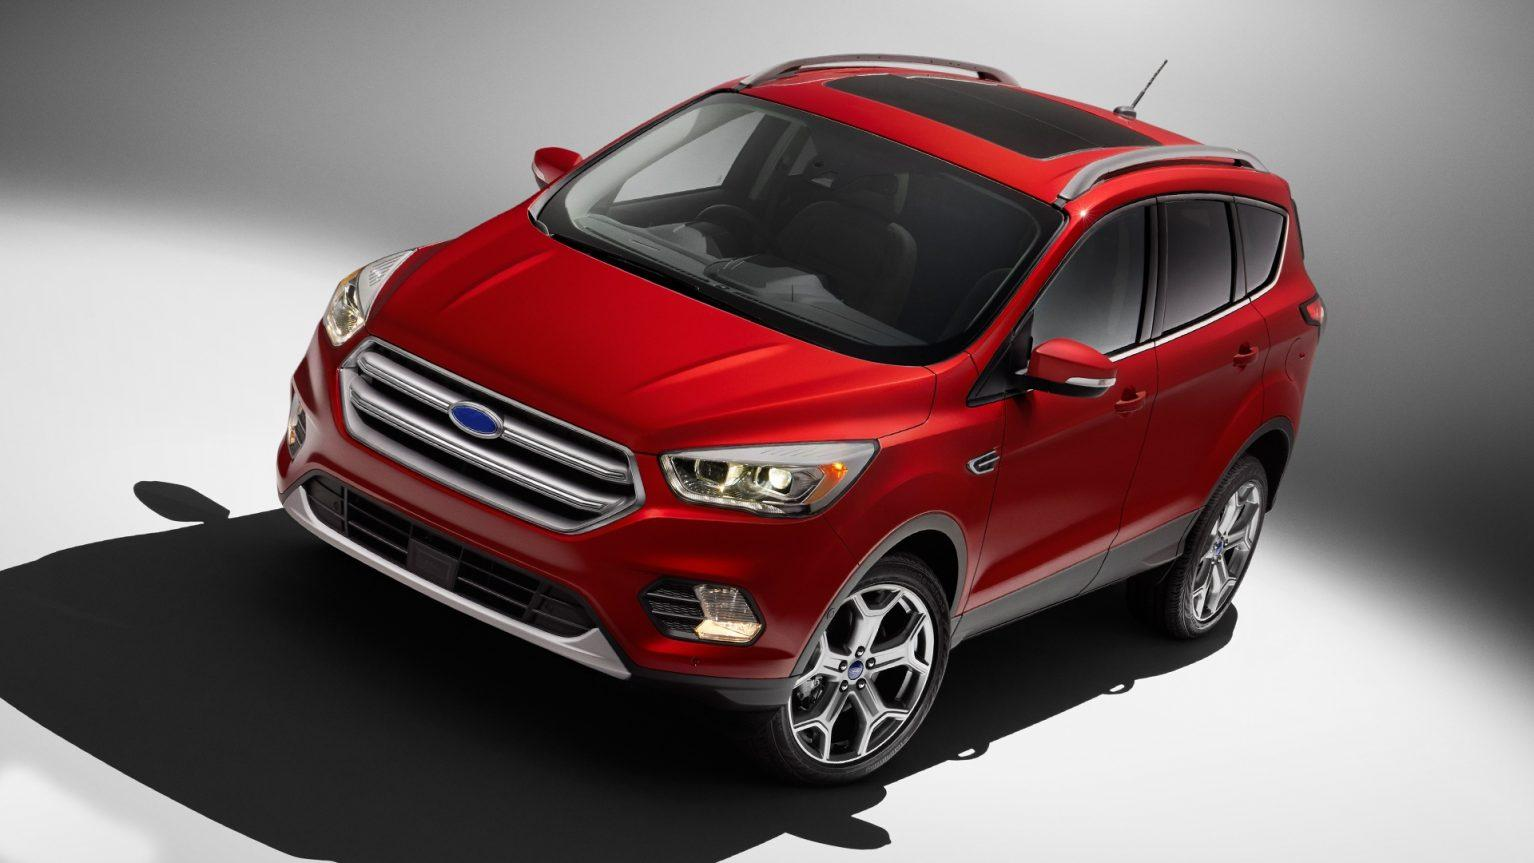 2019 Ford Kuga Exterior HD Wallpaper | Autoweik.com